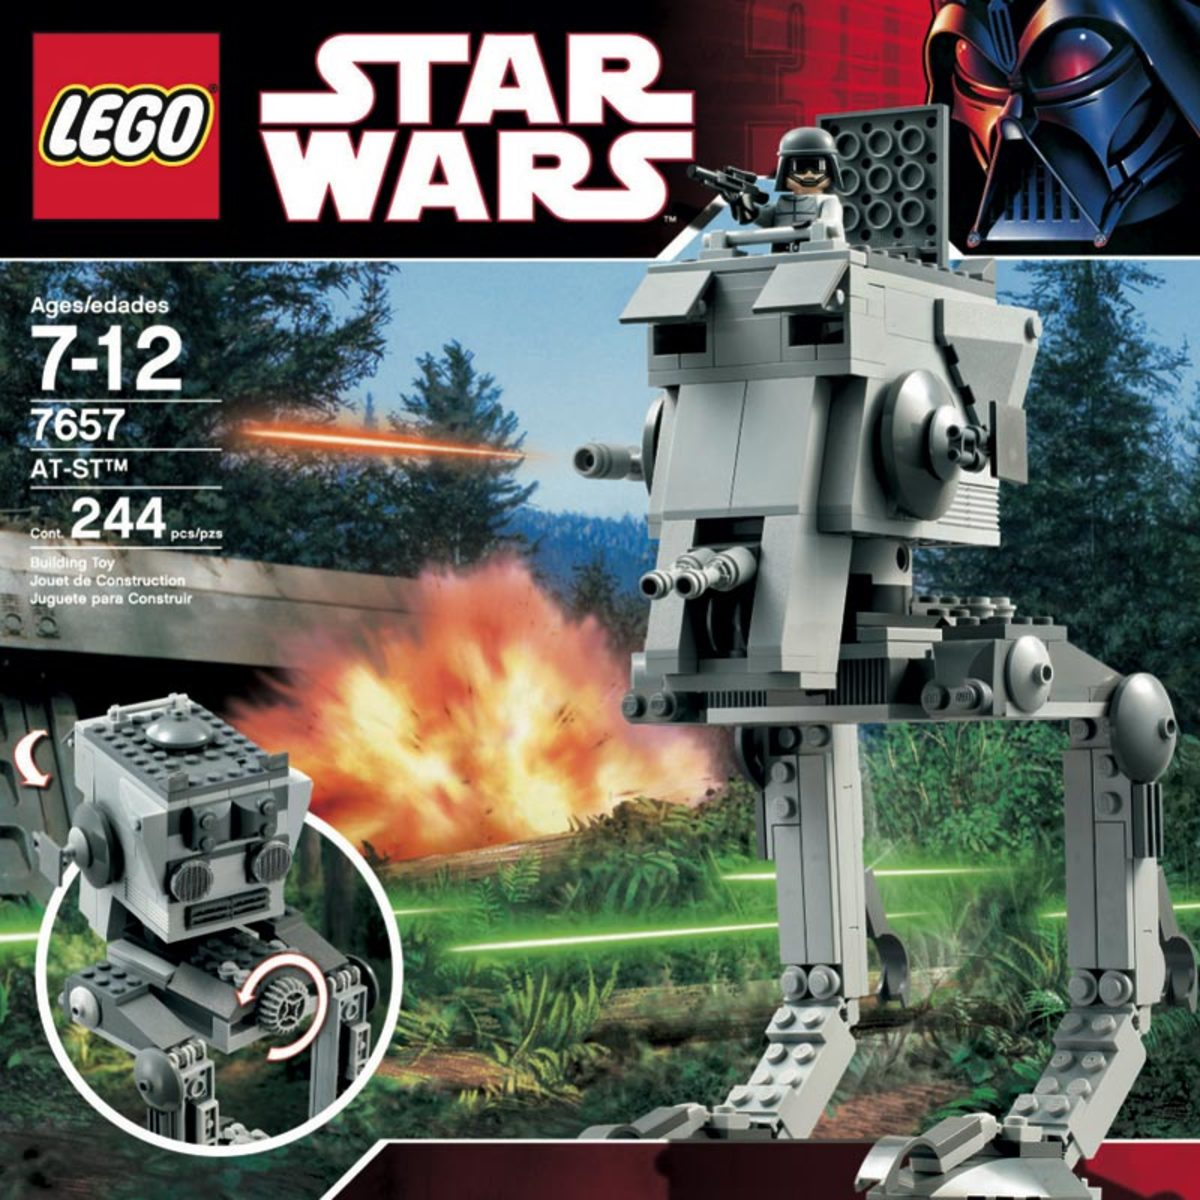 LEGO Star Wars AT-ST 7657 Box